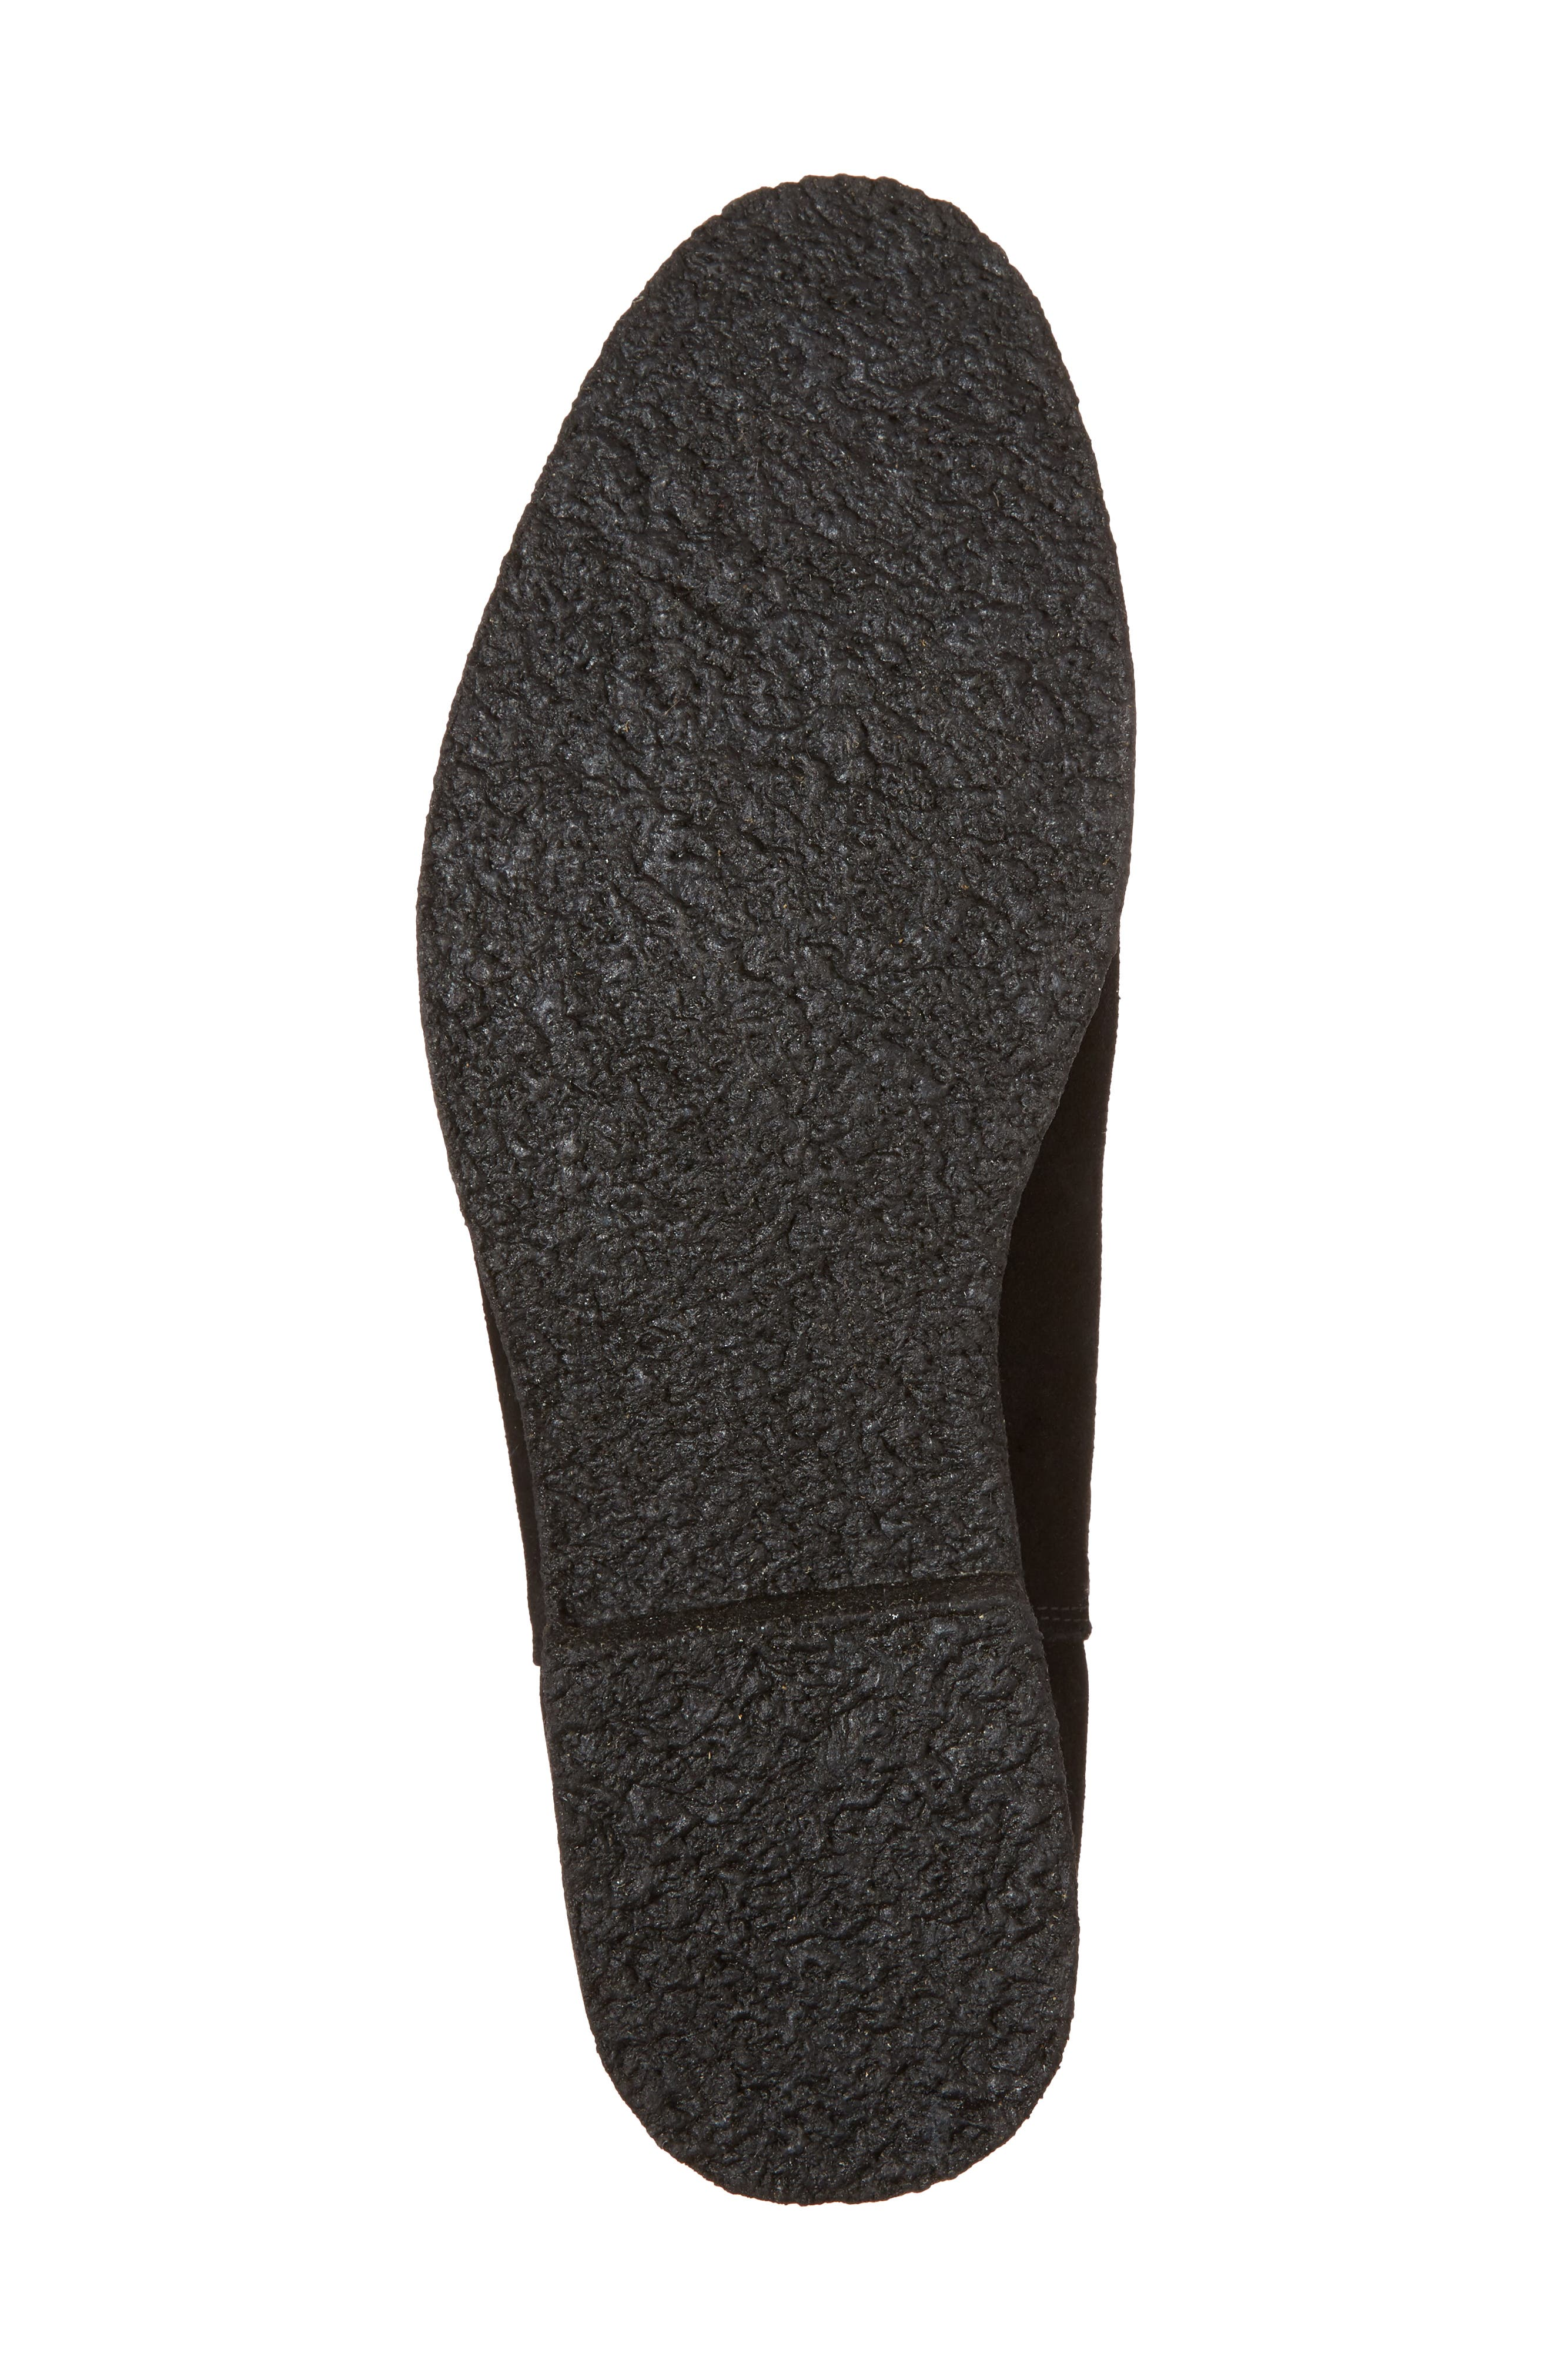 Jared Chelsea Boot,                             Alternate thumbnail 6, color,                             Black Suede